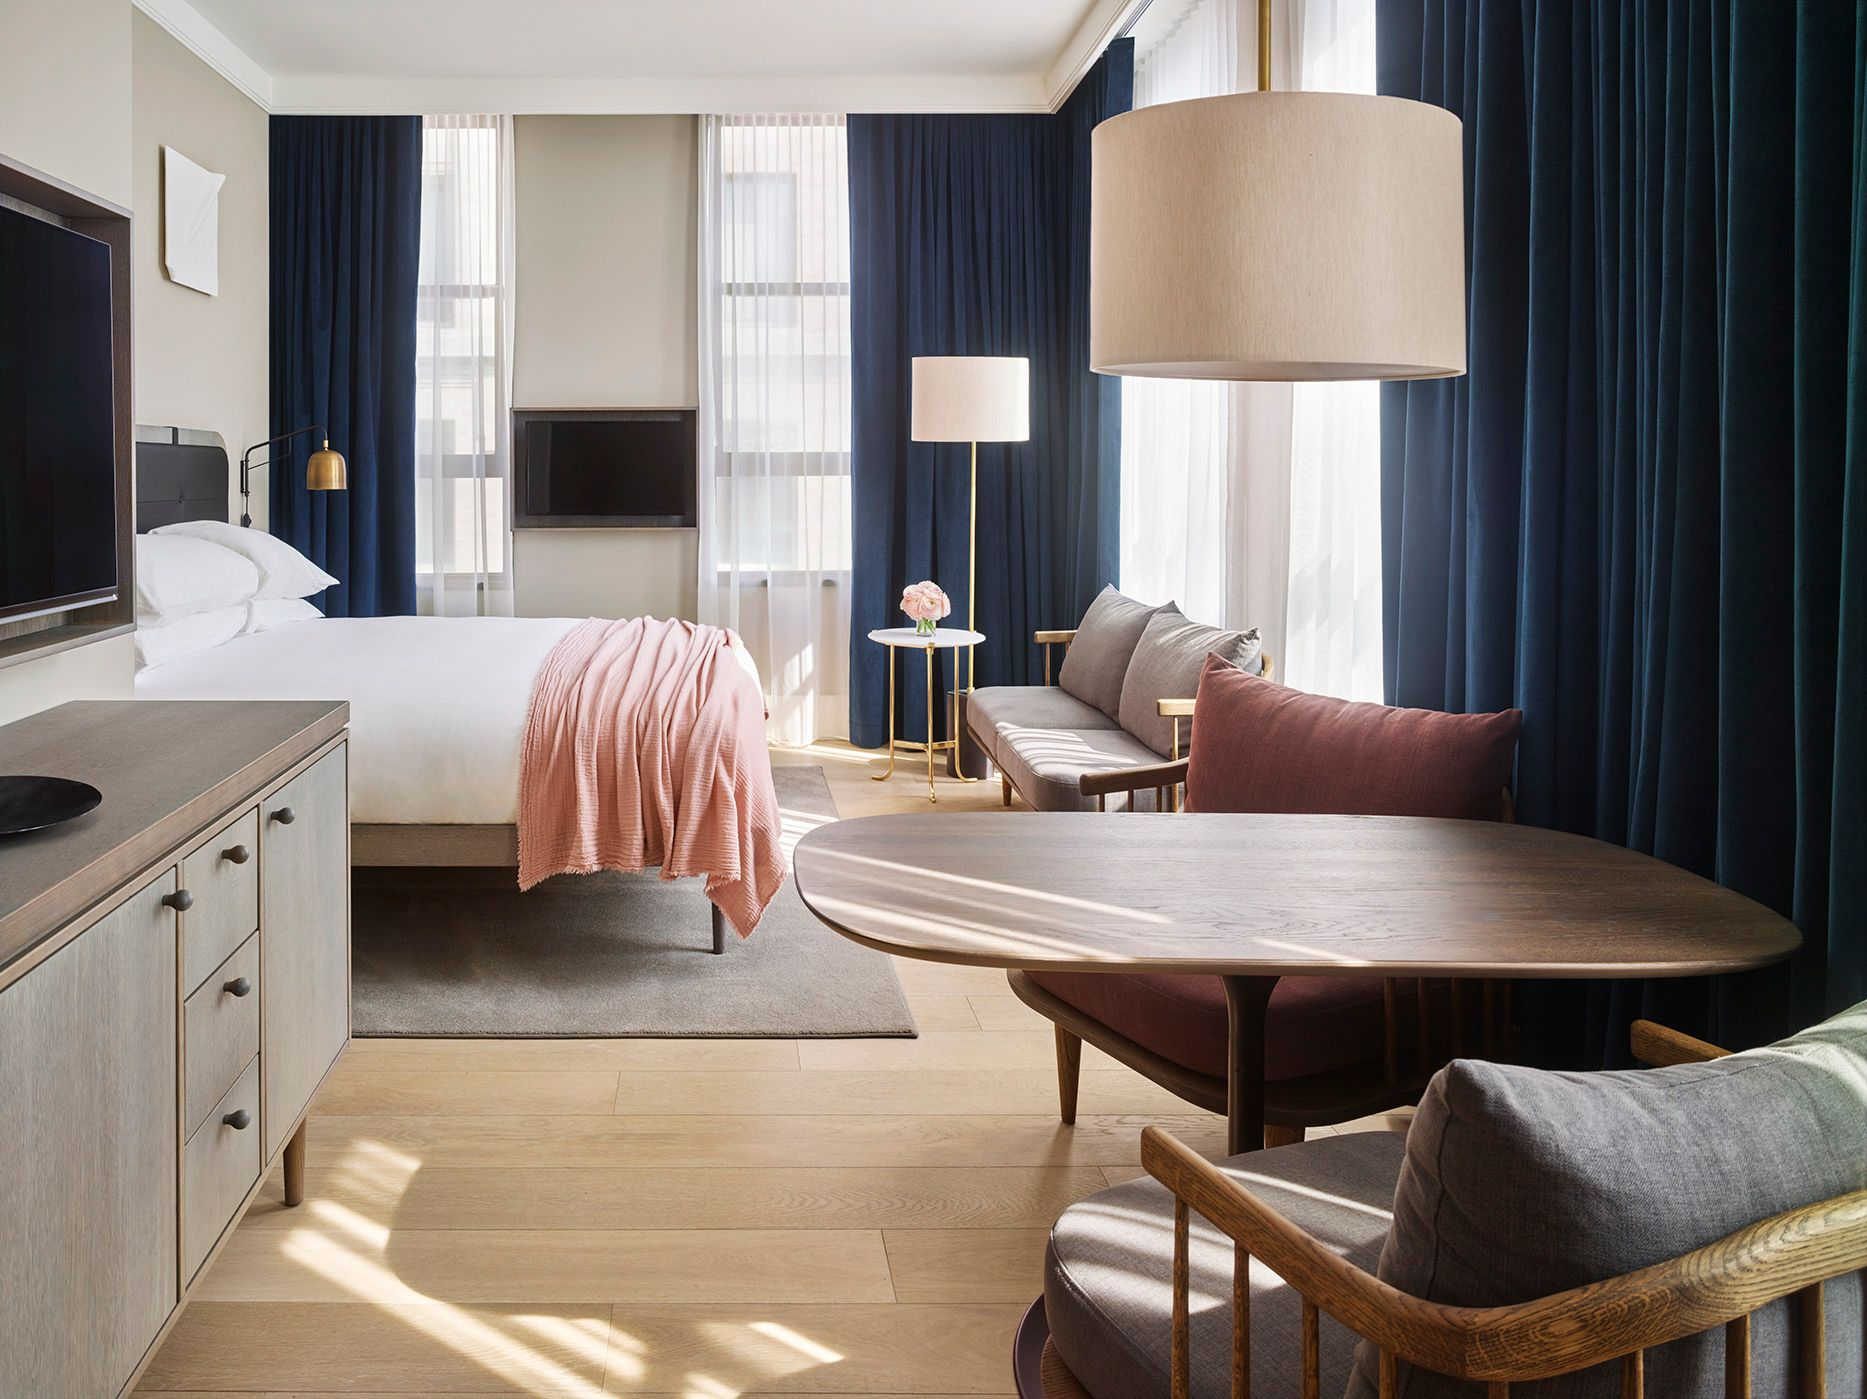 steal this look: a scandi bedroom in a soho hotel | arbeitszimmer, Schlafzimmer entwurf